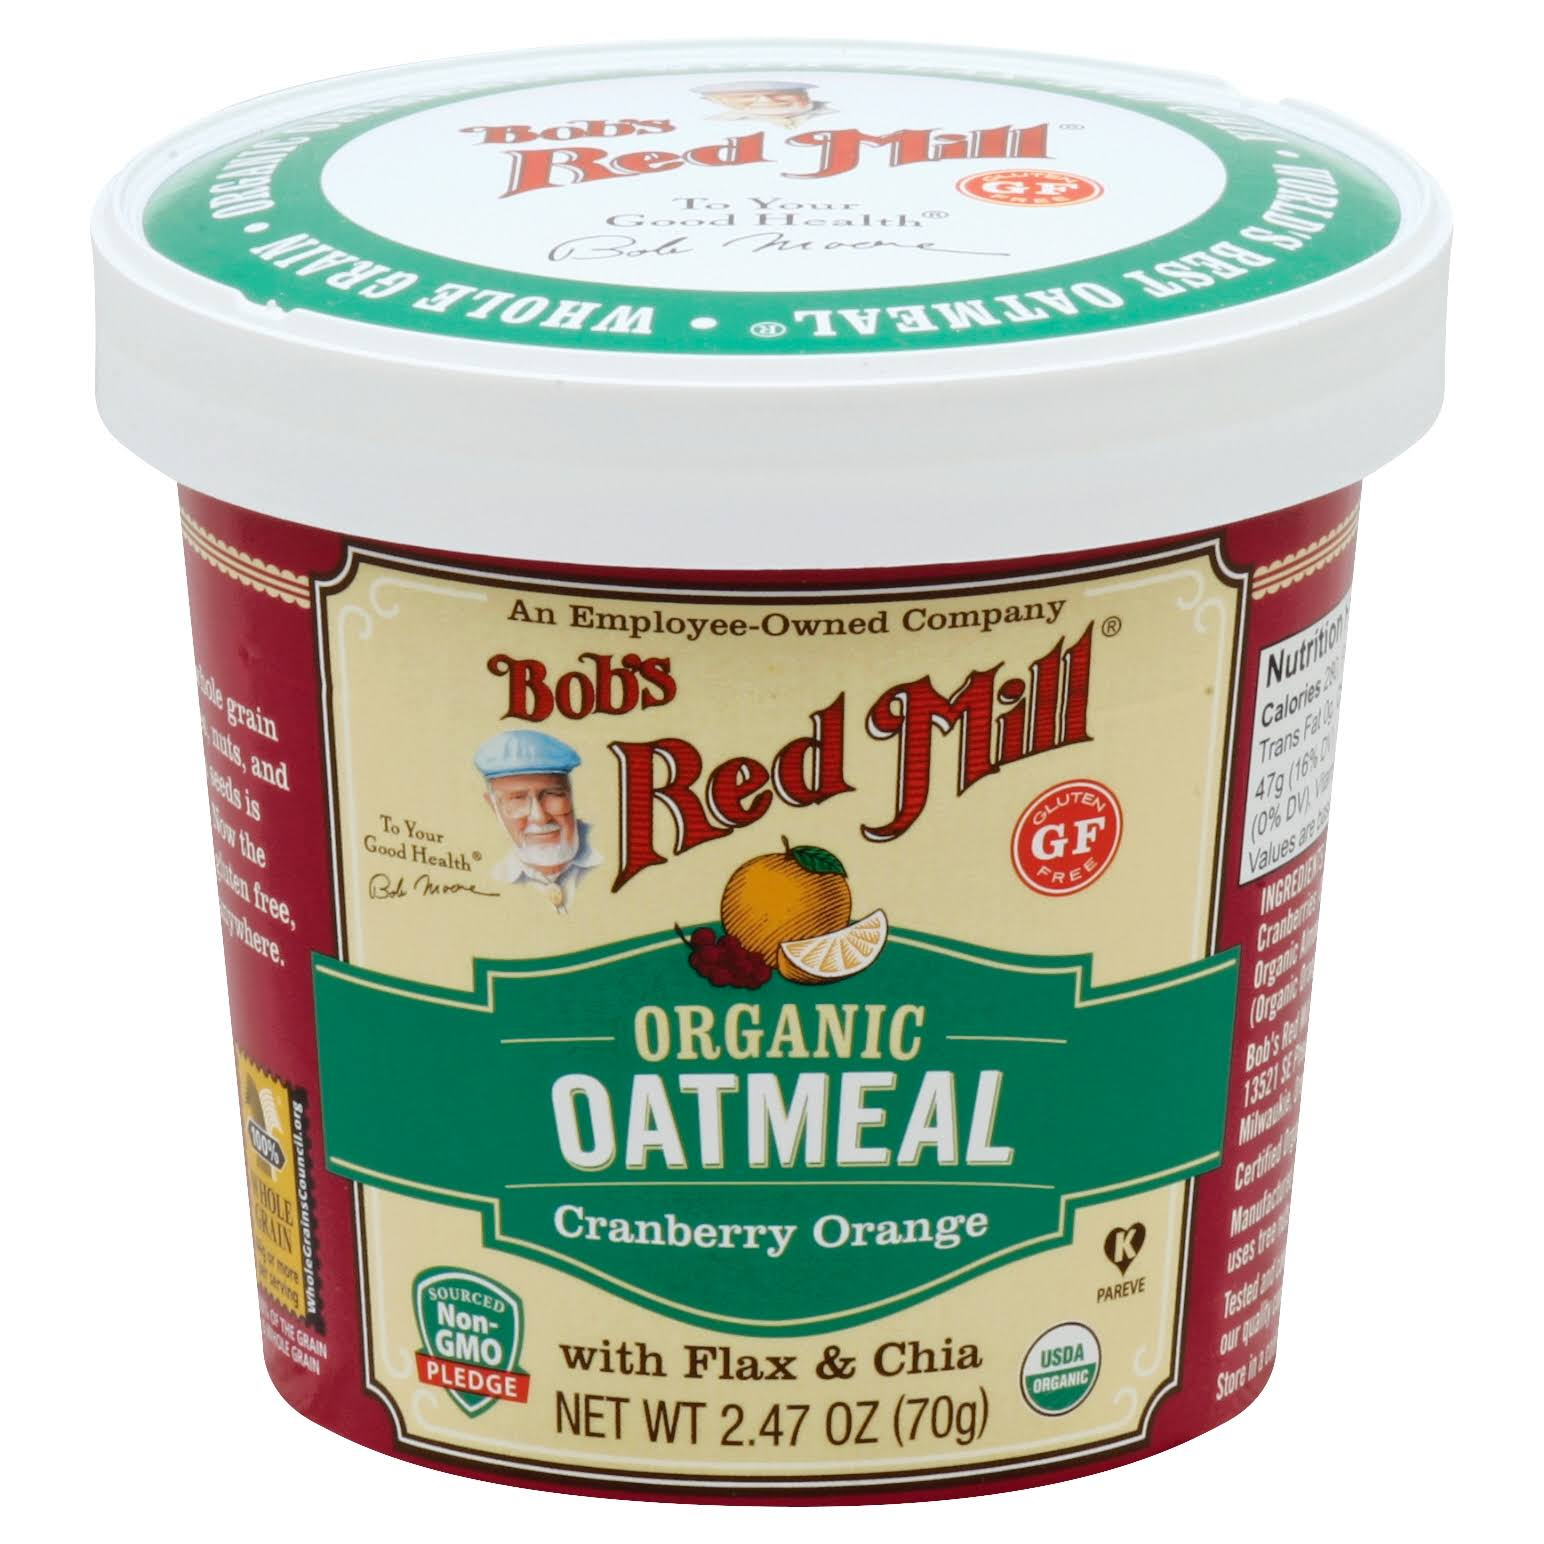 Bobs Red Mill Oatmeal, Organic, Cranberry Orange - 2.47 oz